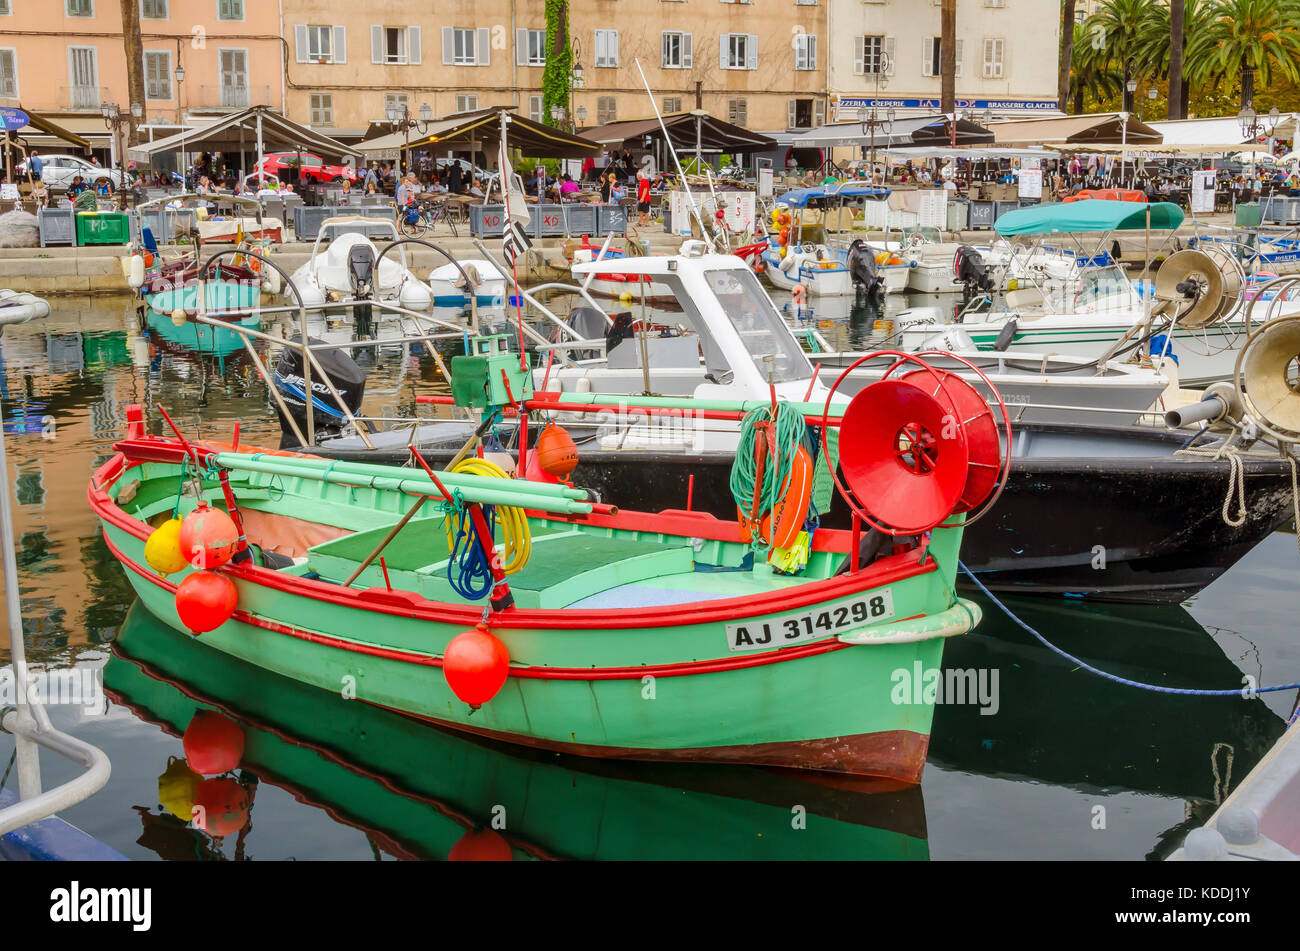 Green and red fishing boat in the habor marina, Ajaccio, Corsica, France. - Stock Image